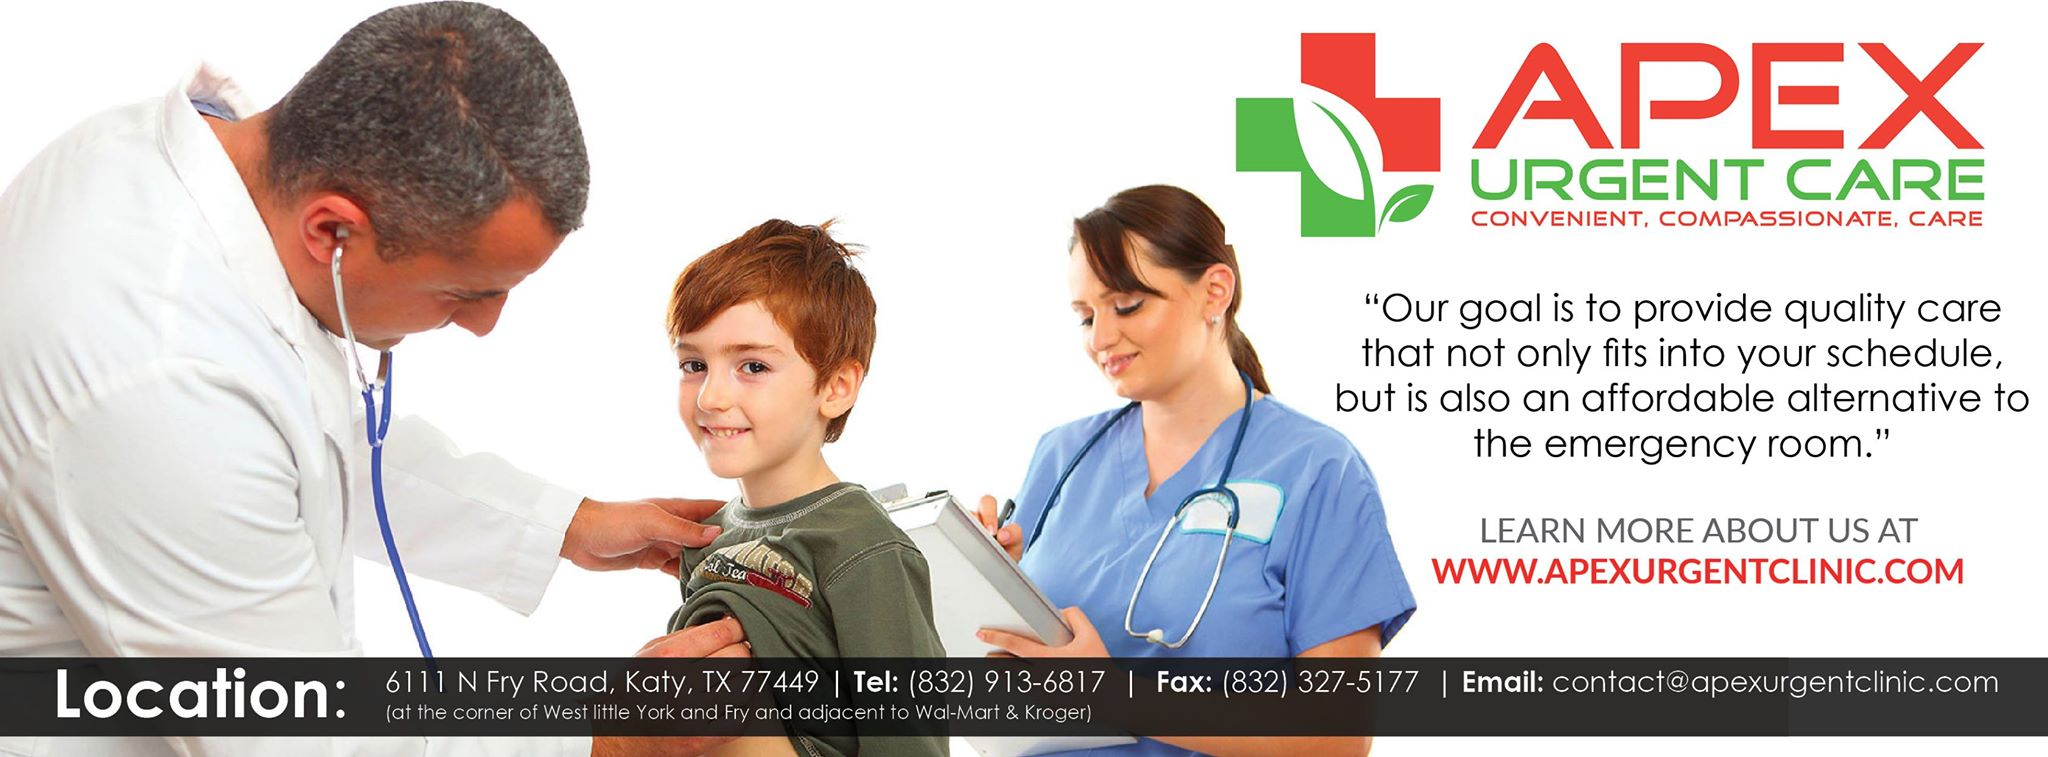 Apex Urgent Care | Urgent Care at 6111 N Fry Rd - Katy TX - Reviews - Photos - Phone Number